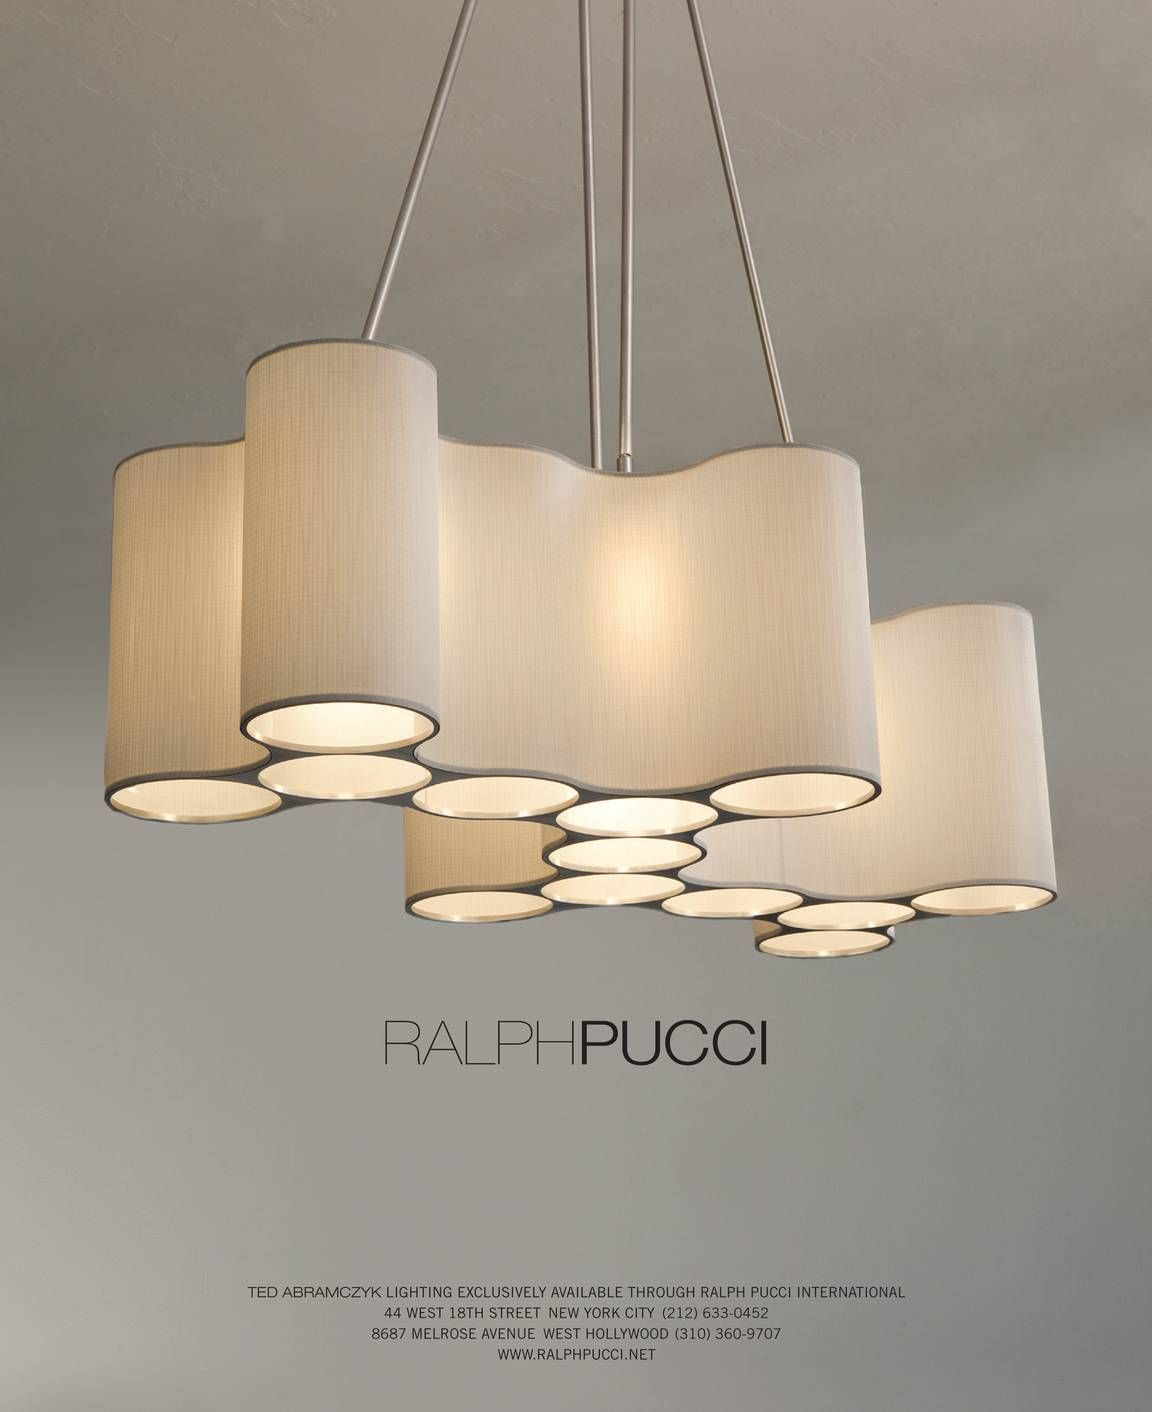 Pin Auf Accesorios Cortinas Persianas: The Glamour, The Balance, The Lines, Wow Interiors